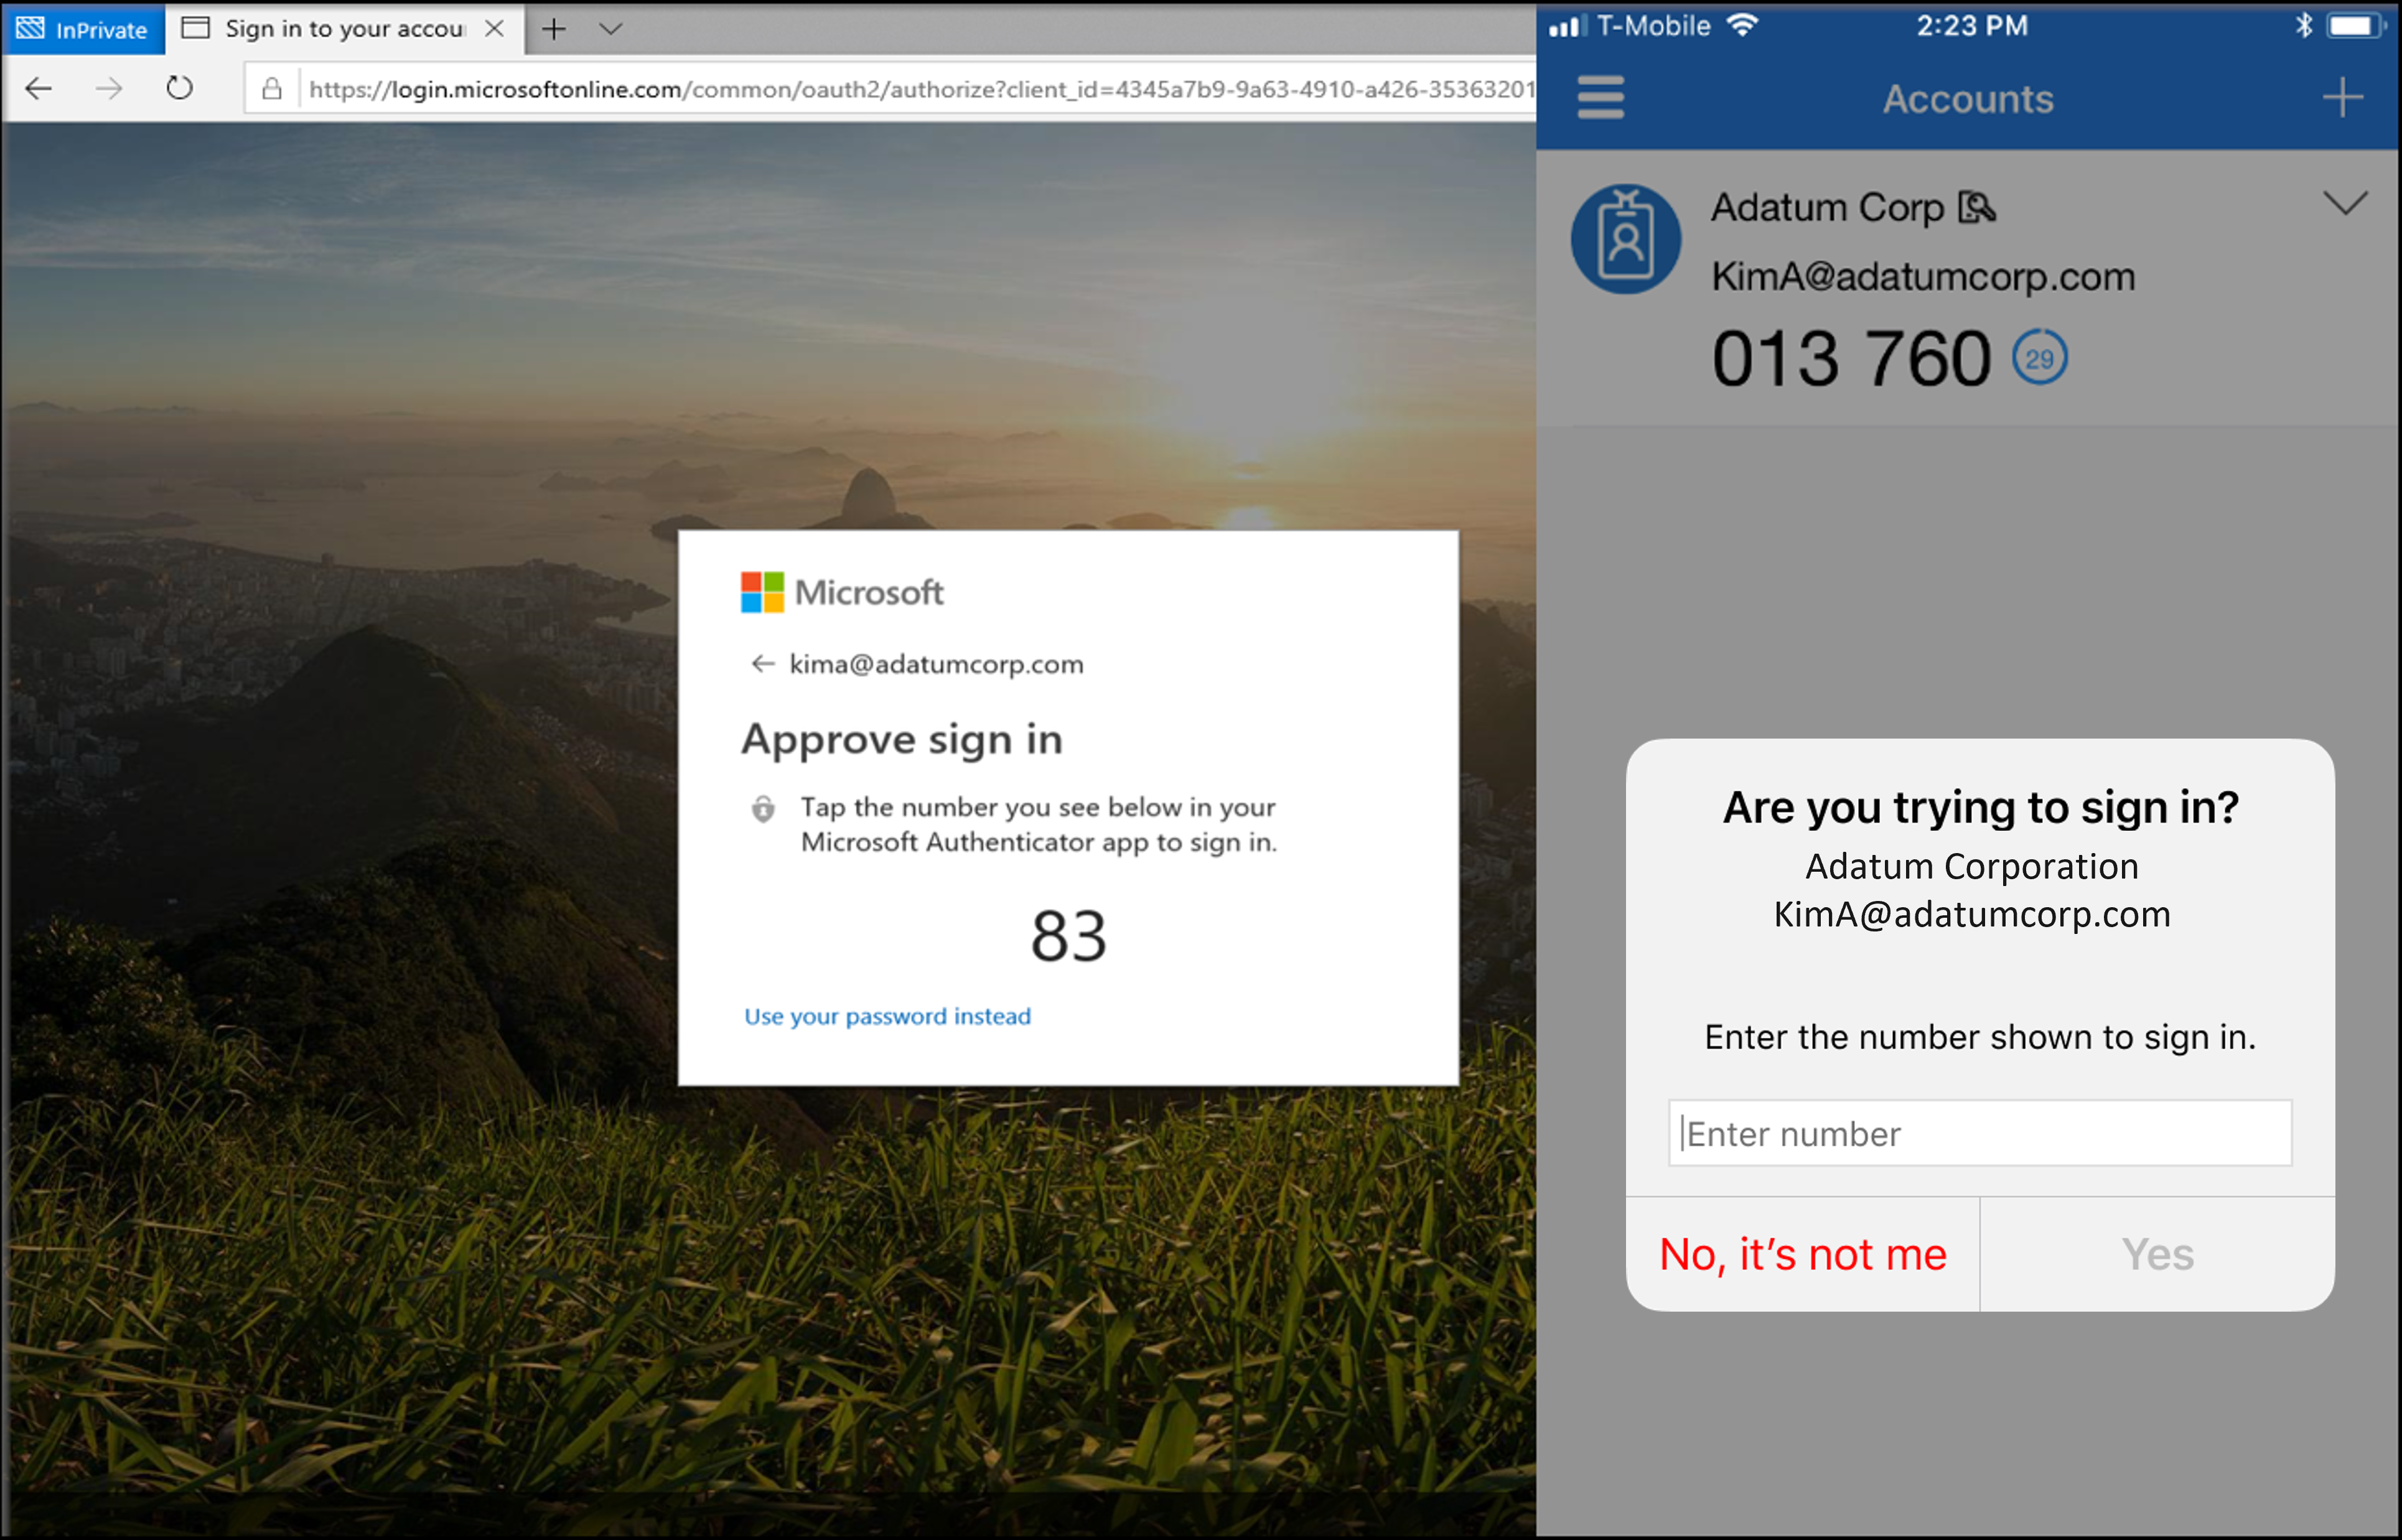 Enable passwordless sign-in with the Microsoft Authenticator